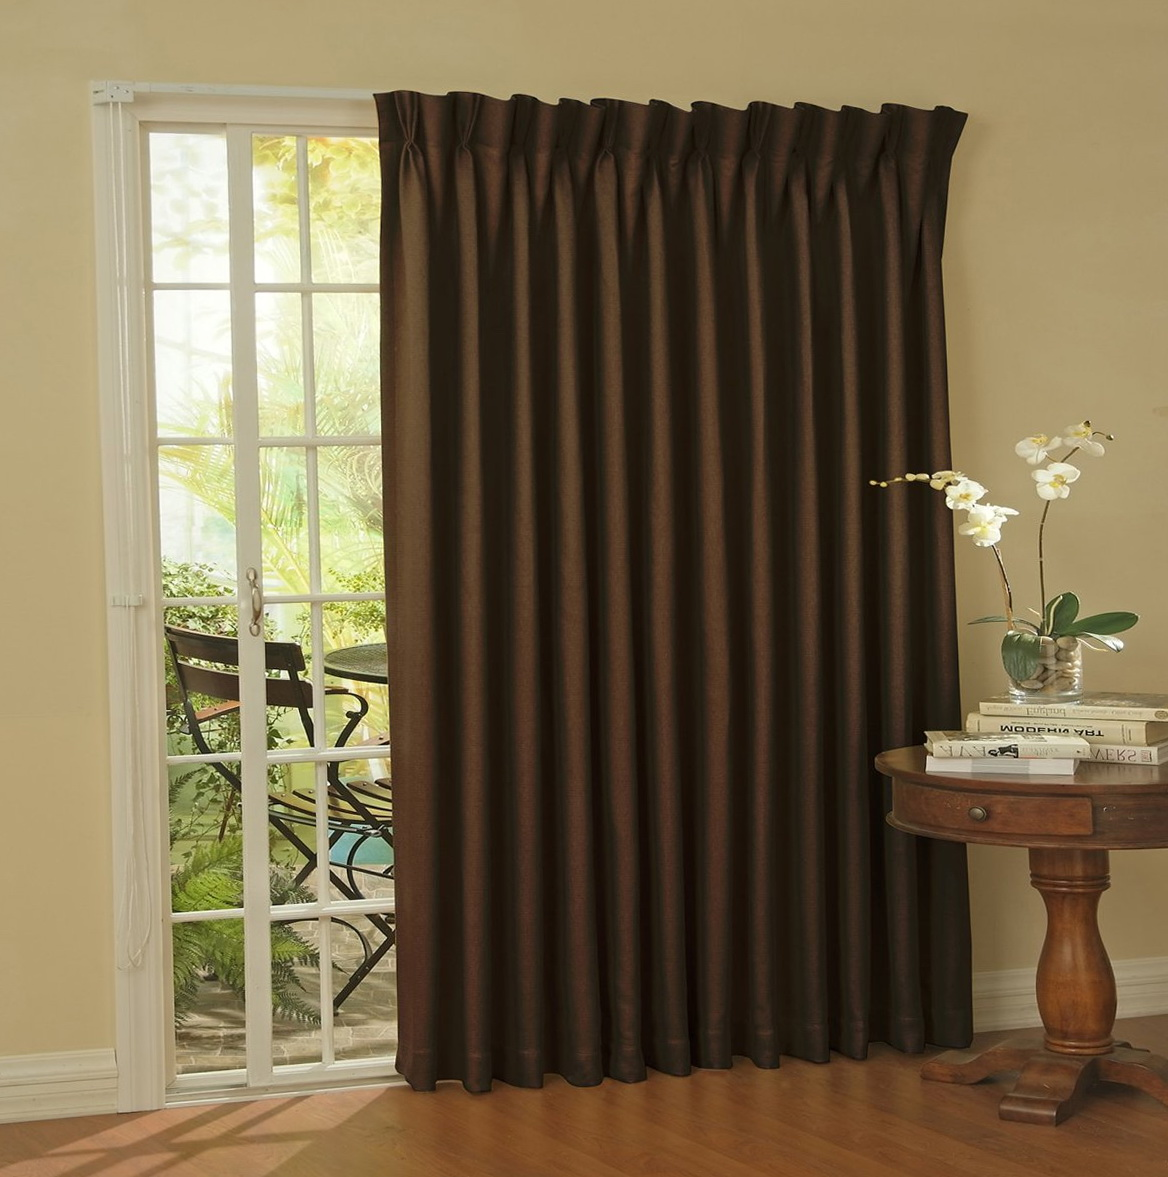 Noise Cancelling Curtains Amazon